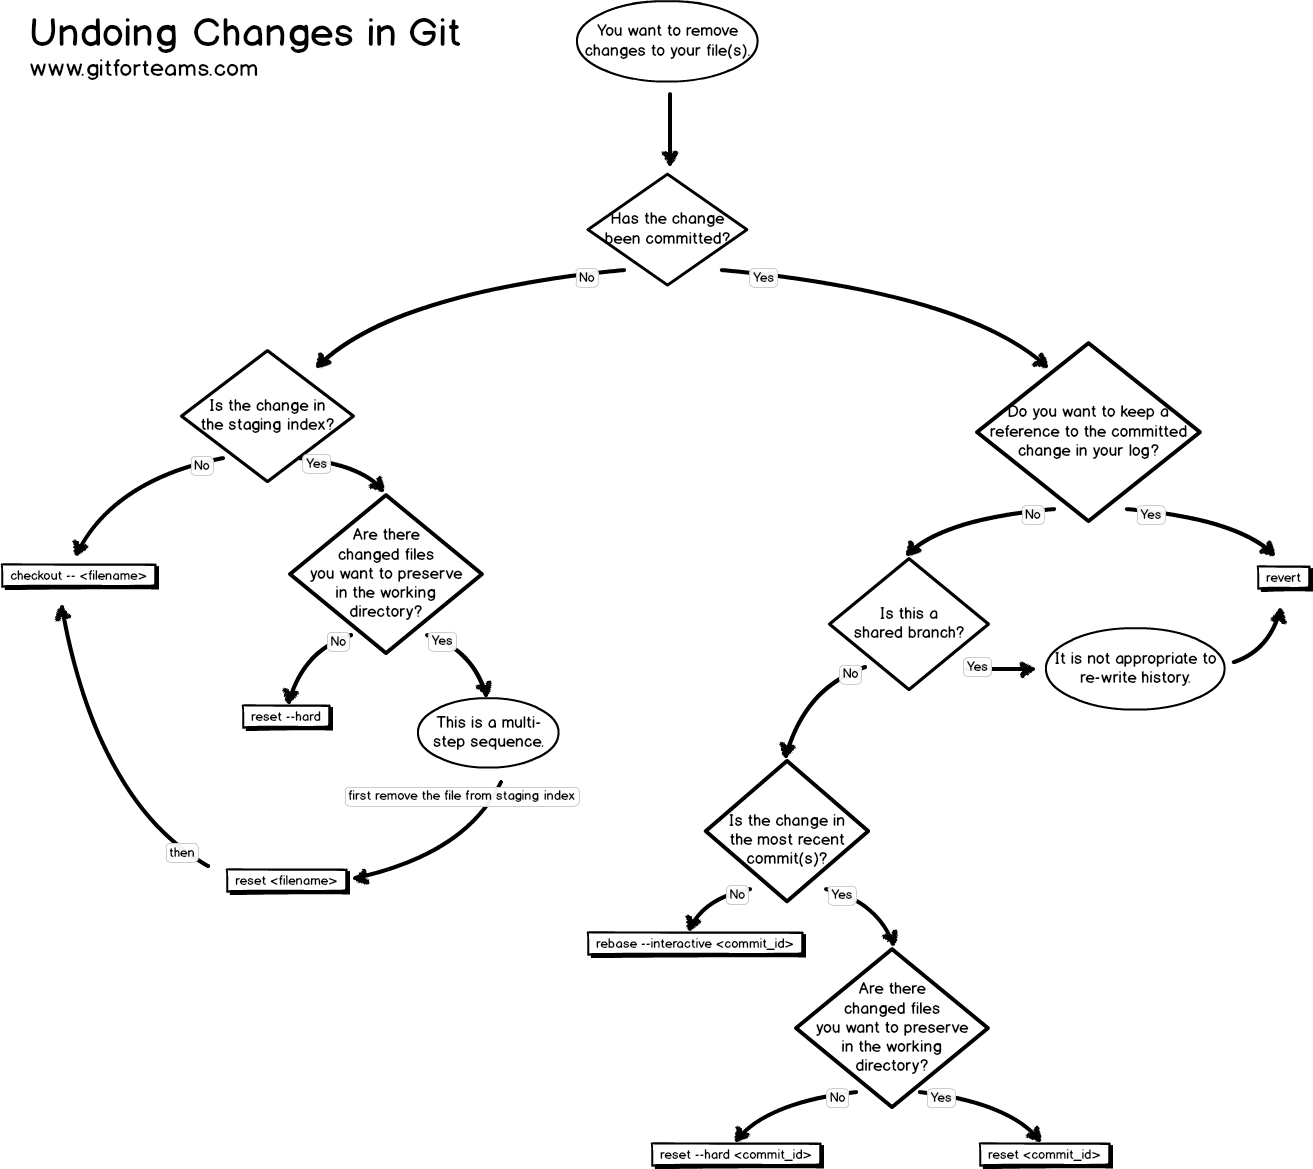 resources/workflow-undoing-changes.png